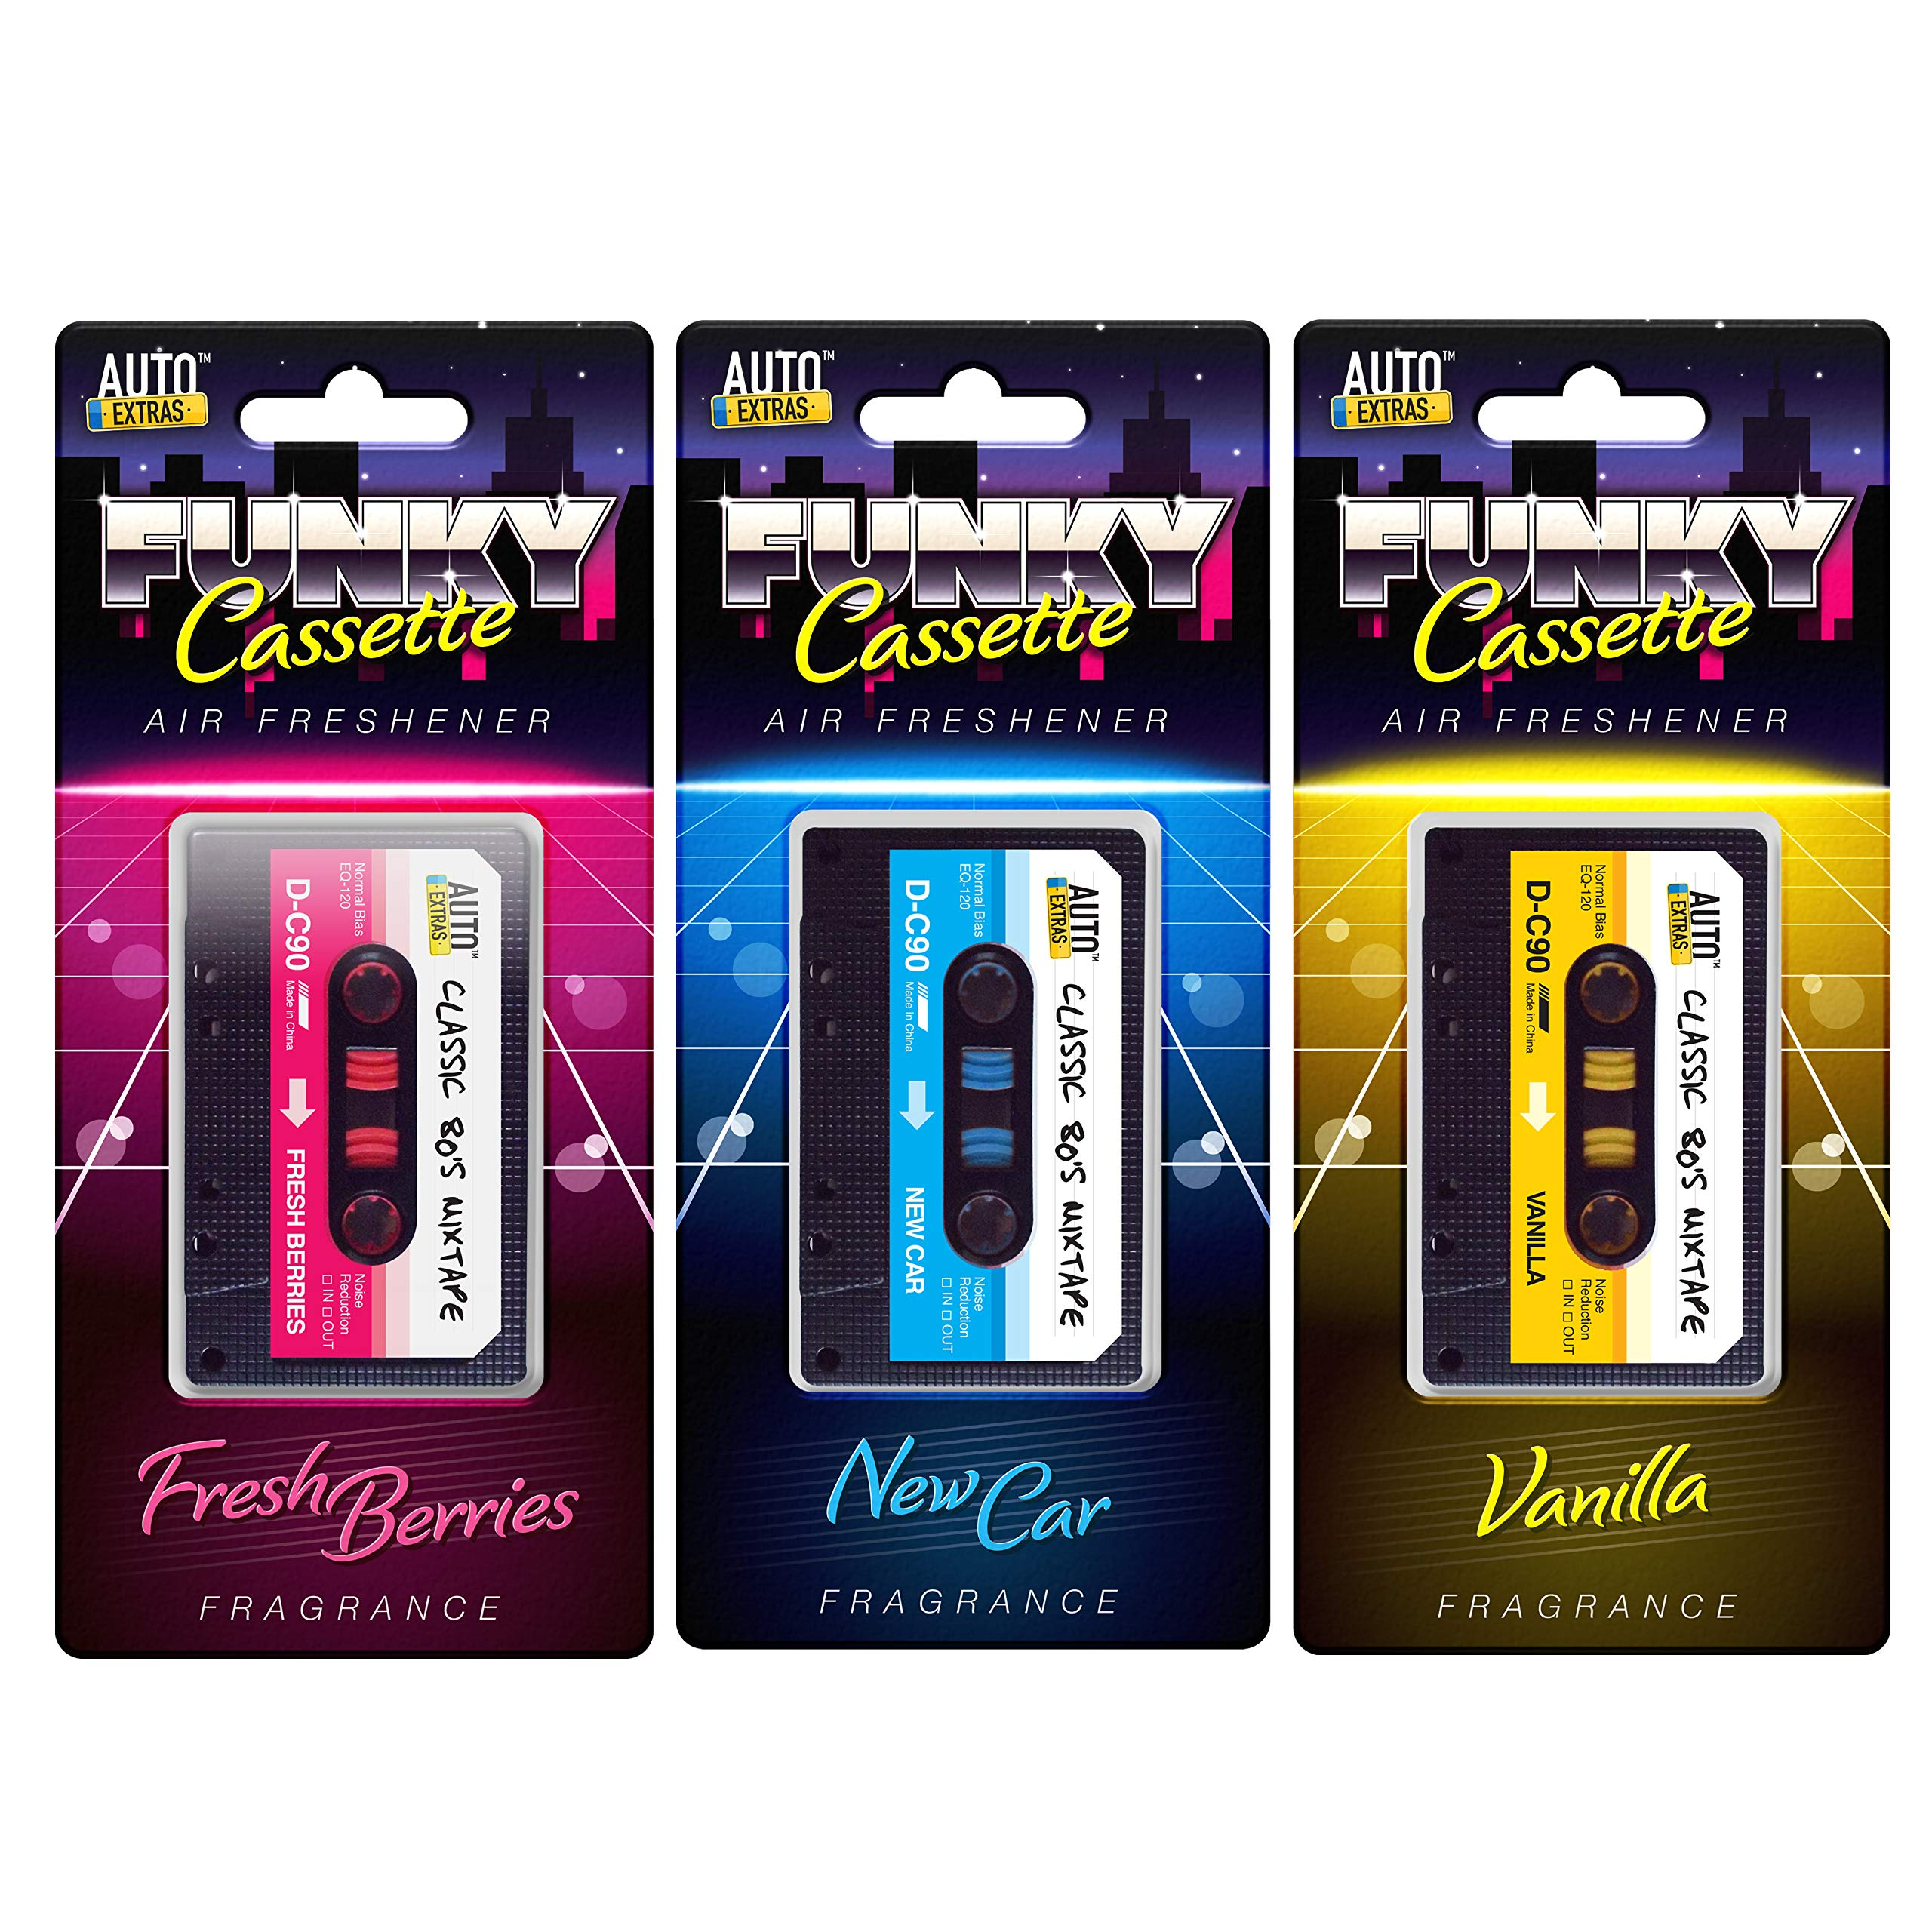 Auto Extas Retro Cassette Tape Car Air Freshener | Pack of 3 Novelty Car Freshener; Vanilla, Car, Fresh Berries